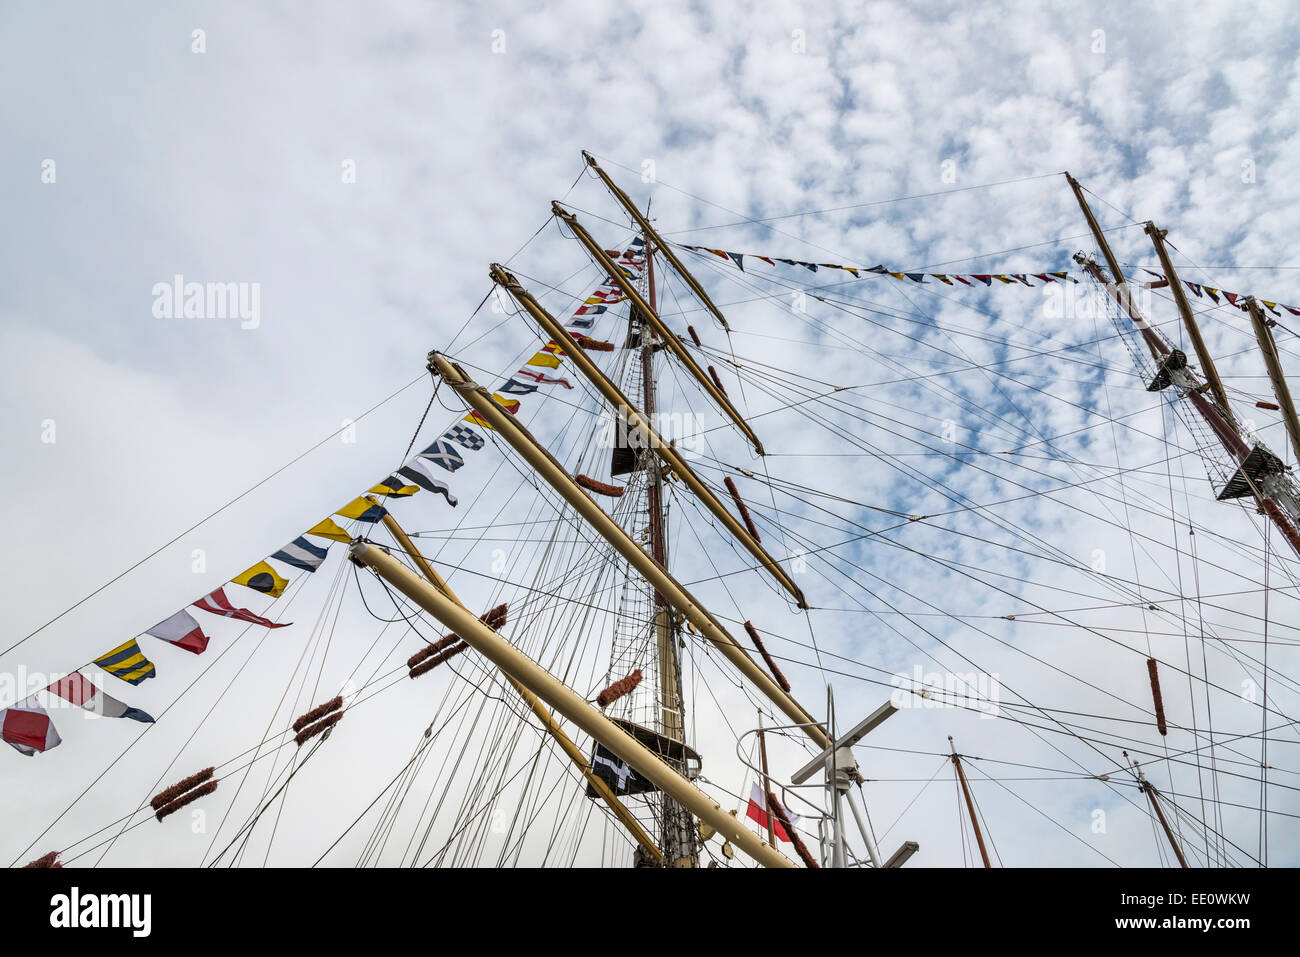 Mast, rigging and flags on the Tall Ship sailing vessel - EDITORIAL USE ONLY - Stock Image